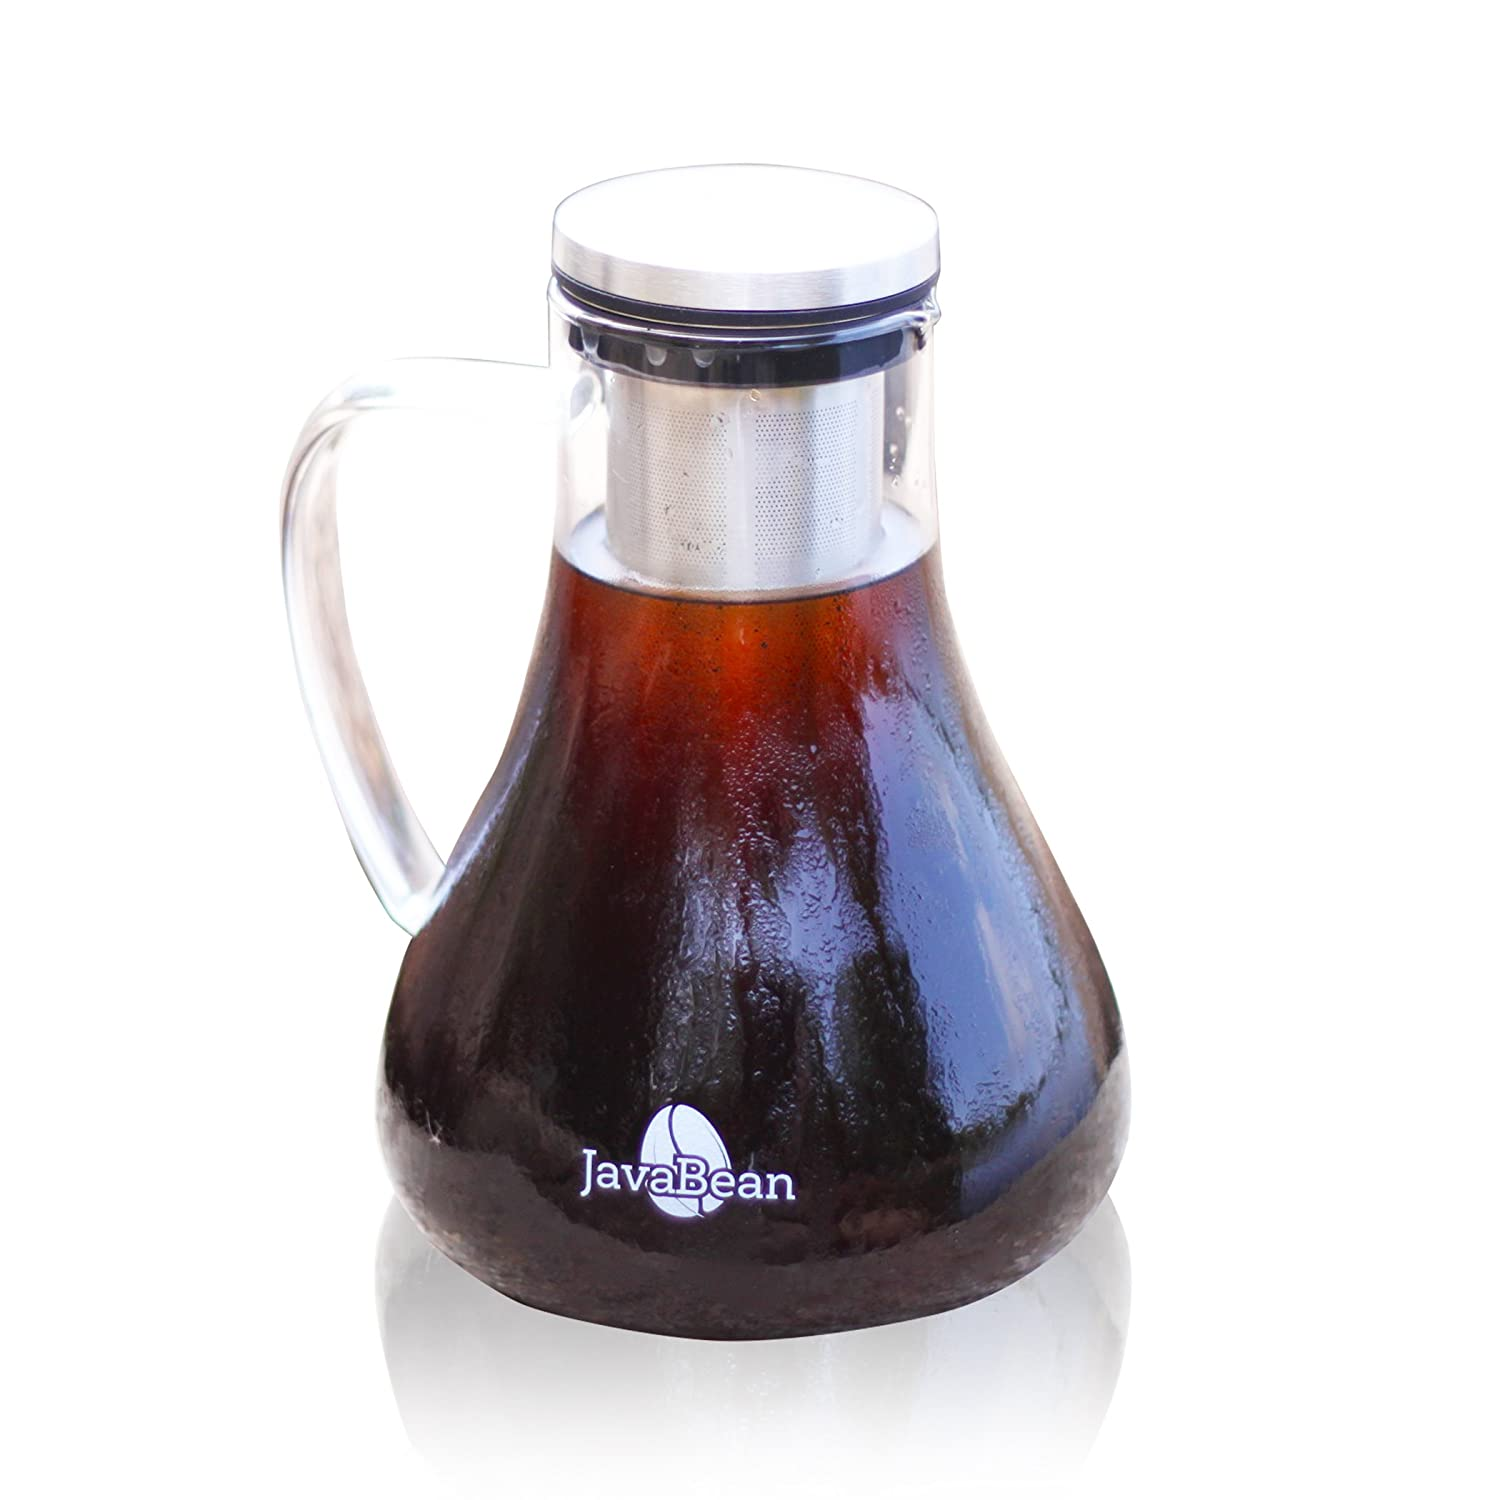 Cold Brew Coffee Maker - Best Cold Brew Coffee, Iced Tea & Fruit Infuser | Airtight System, Dishwasher Safe, Stainless Steel Laser Cut Filter | 1.5L/51oz Capacity